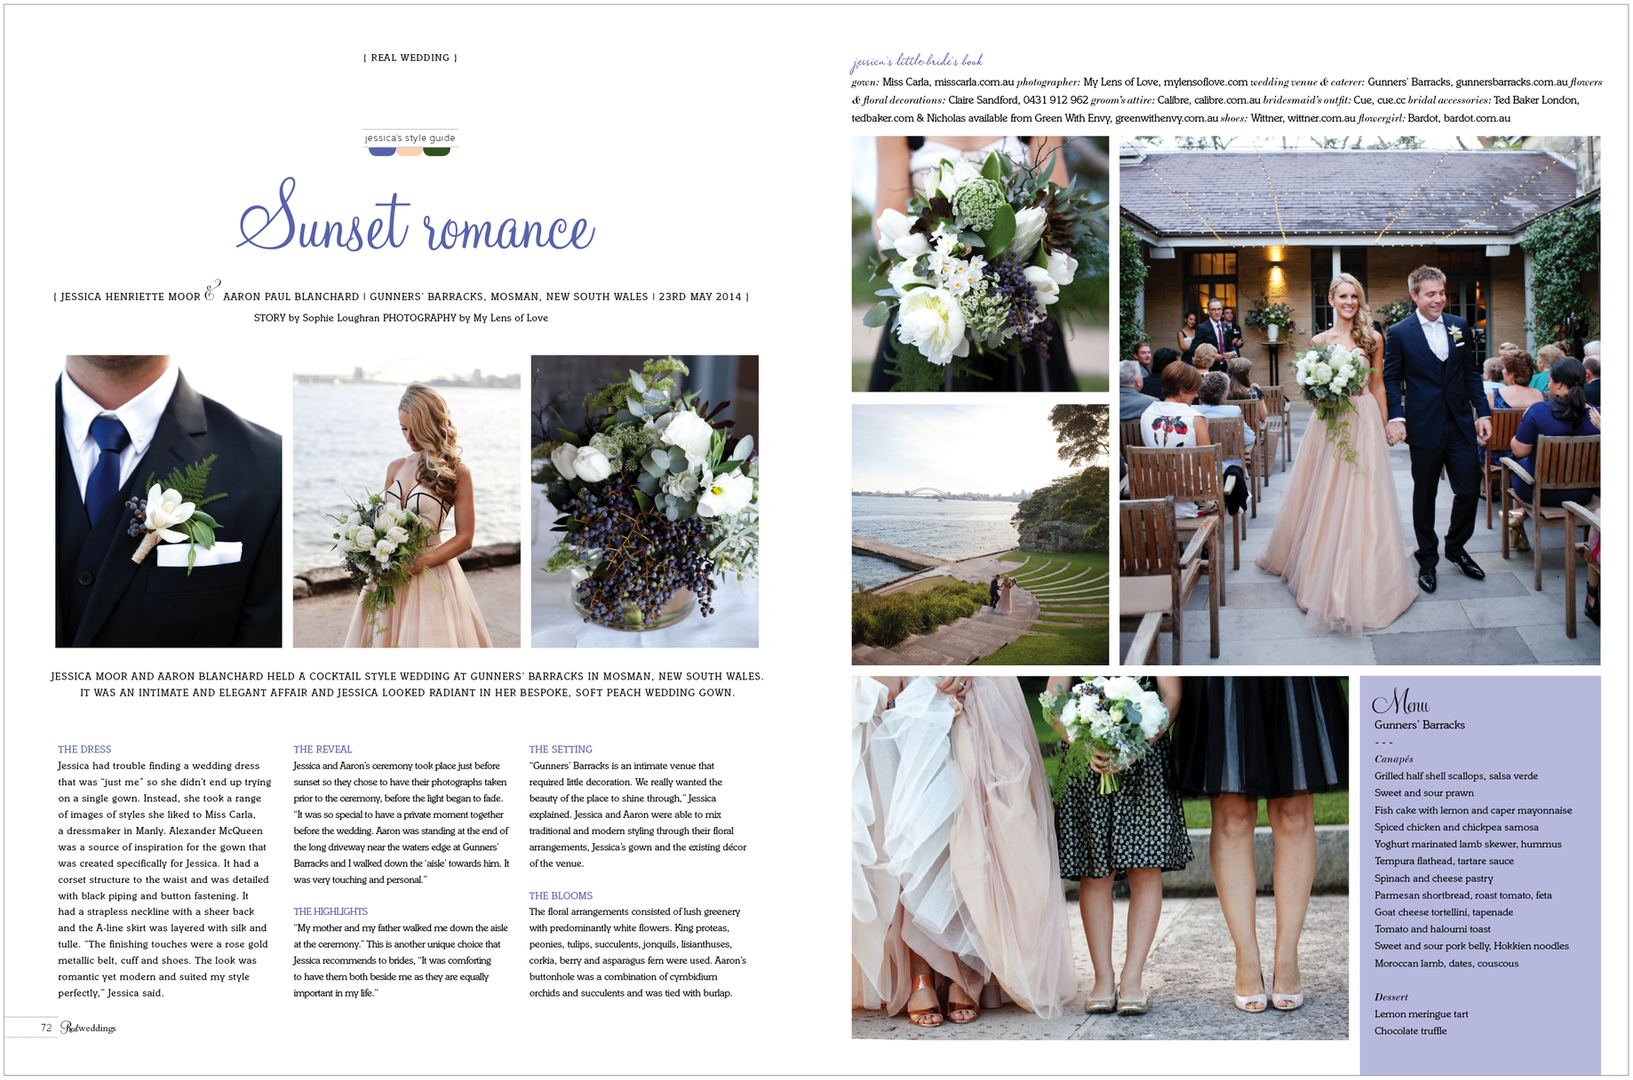 Issue 26 (Real Weddings)